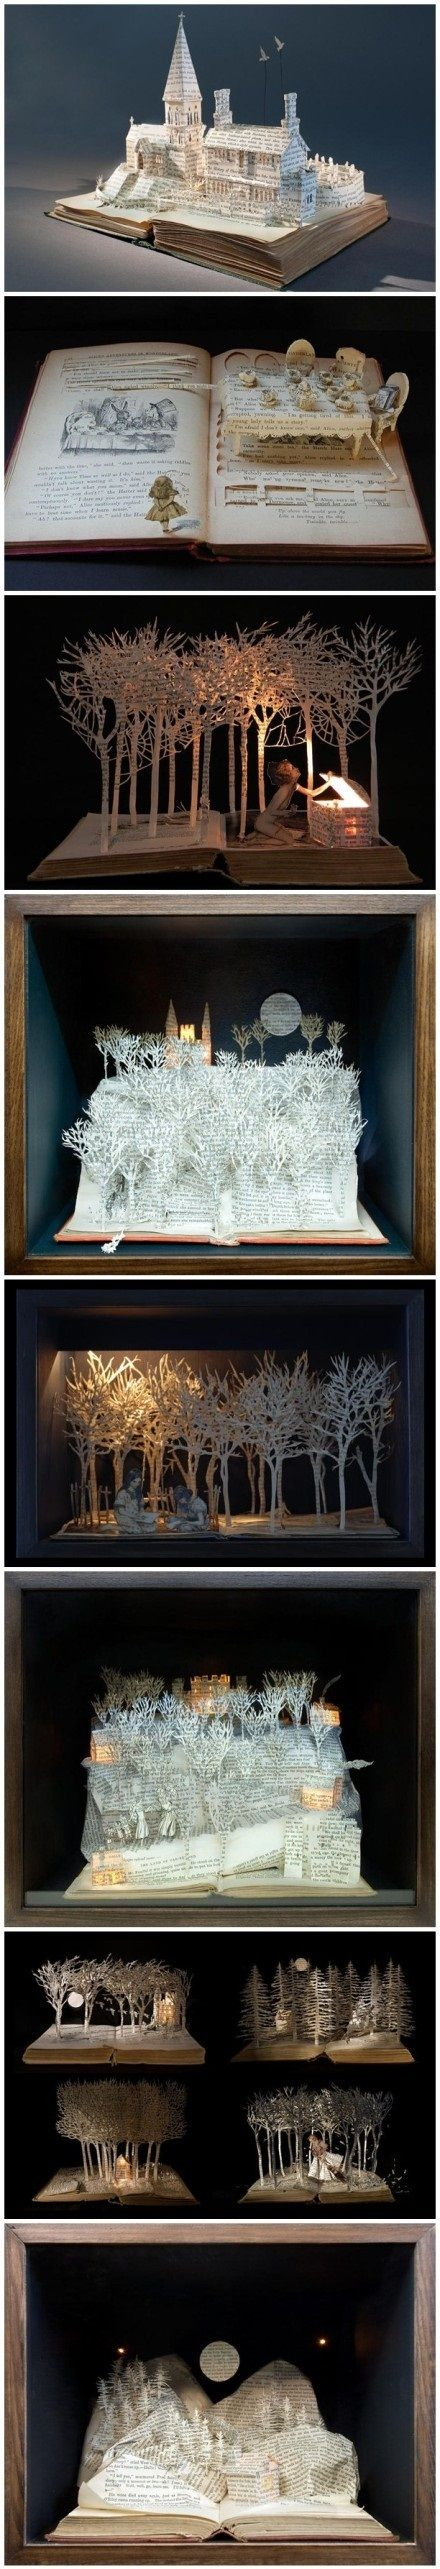 British female artist Su, Blackwell, paper cutting and origami sculpture of a childhood fantasy